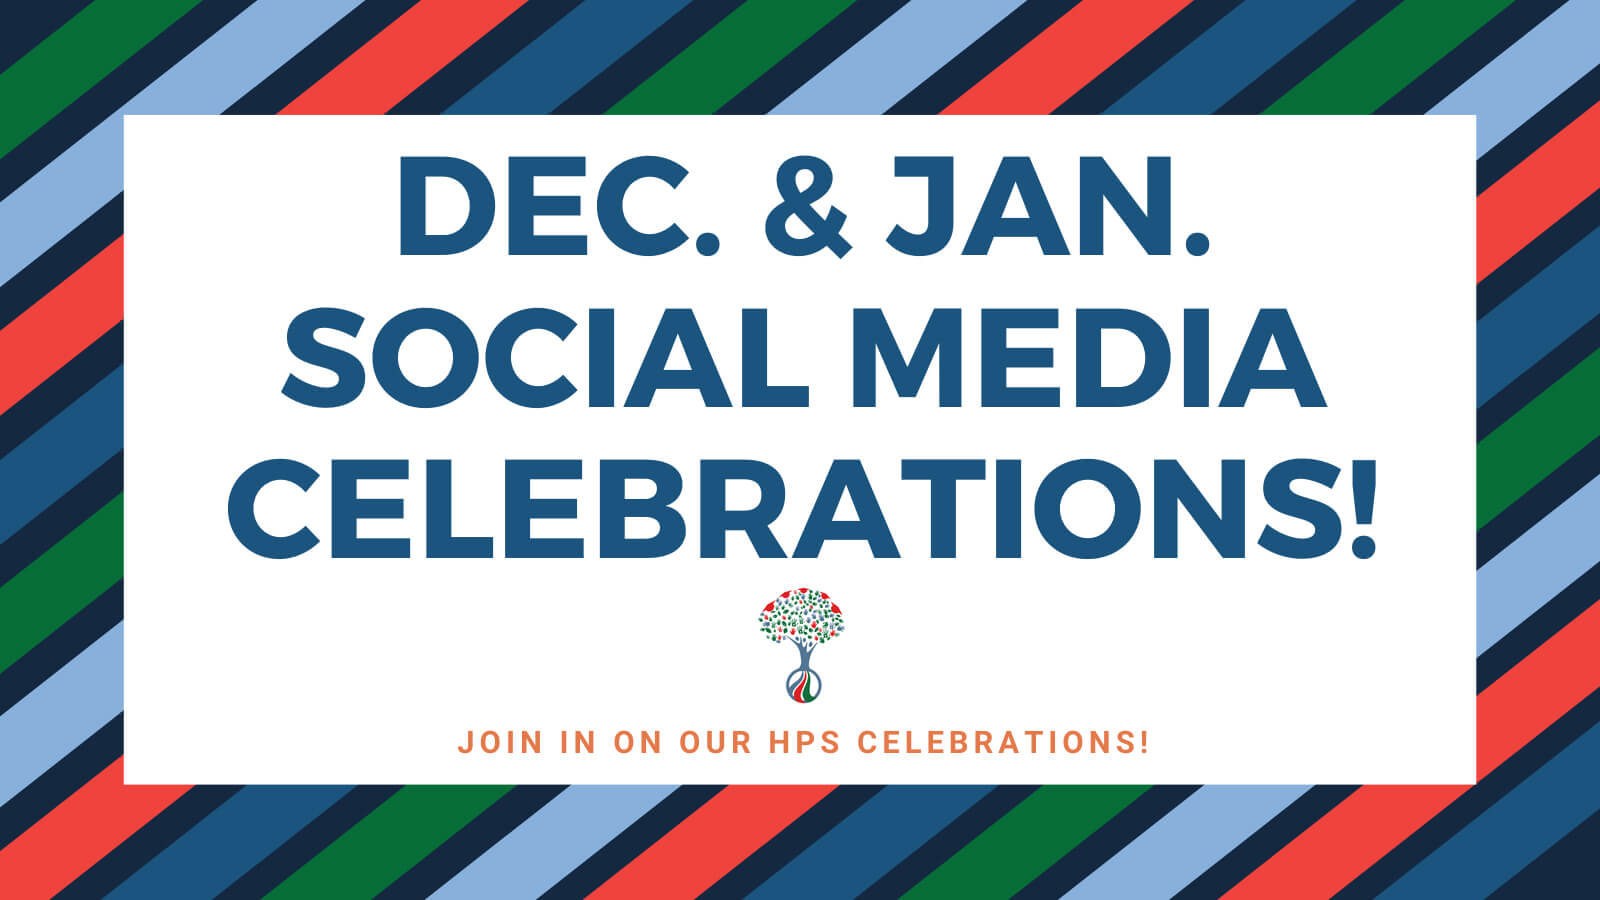 Join us in our December and January Social Media Celebrations!